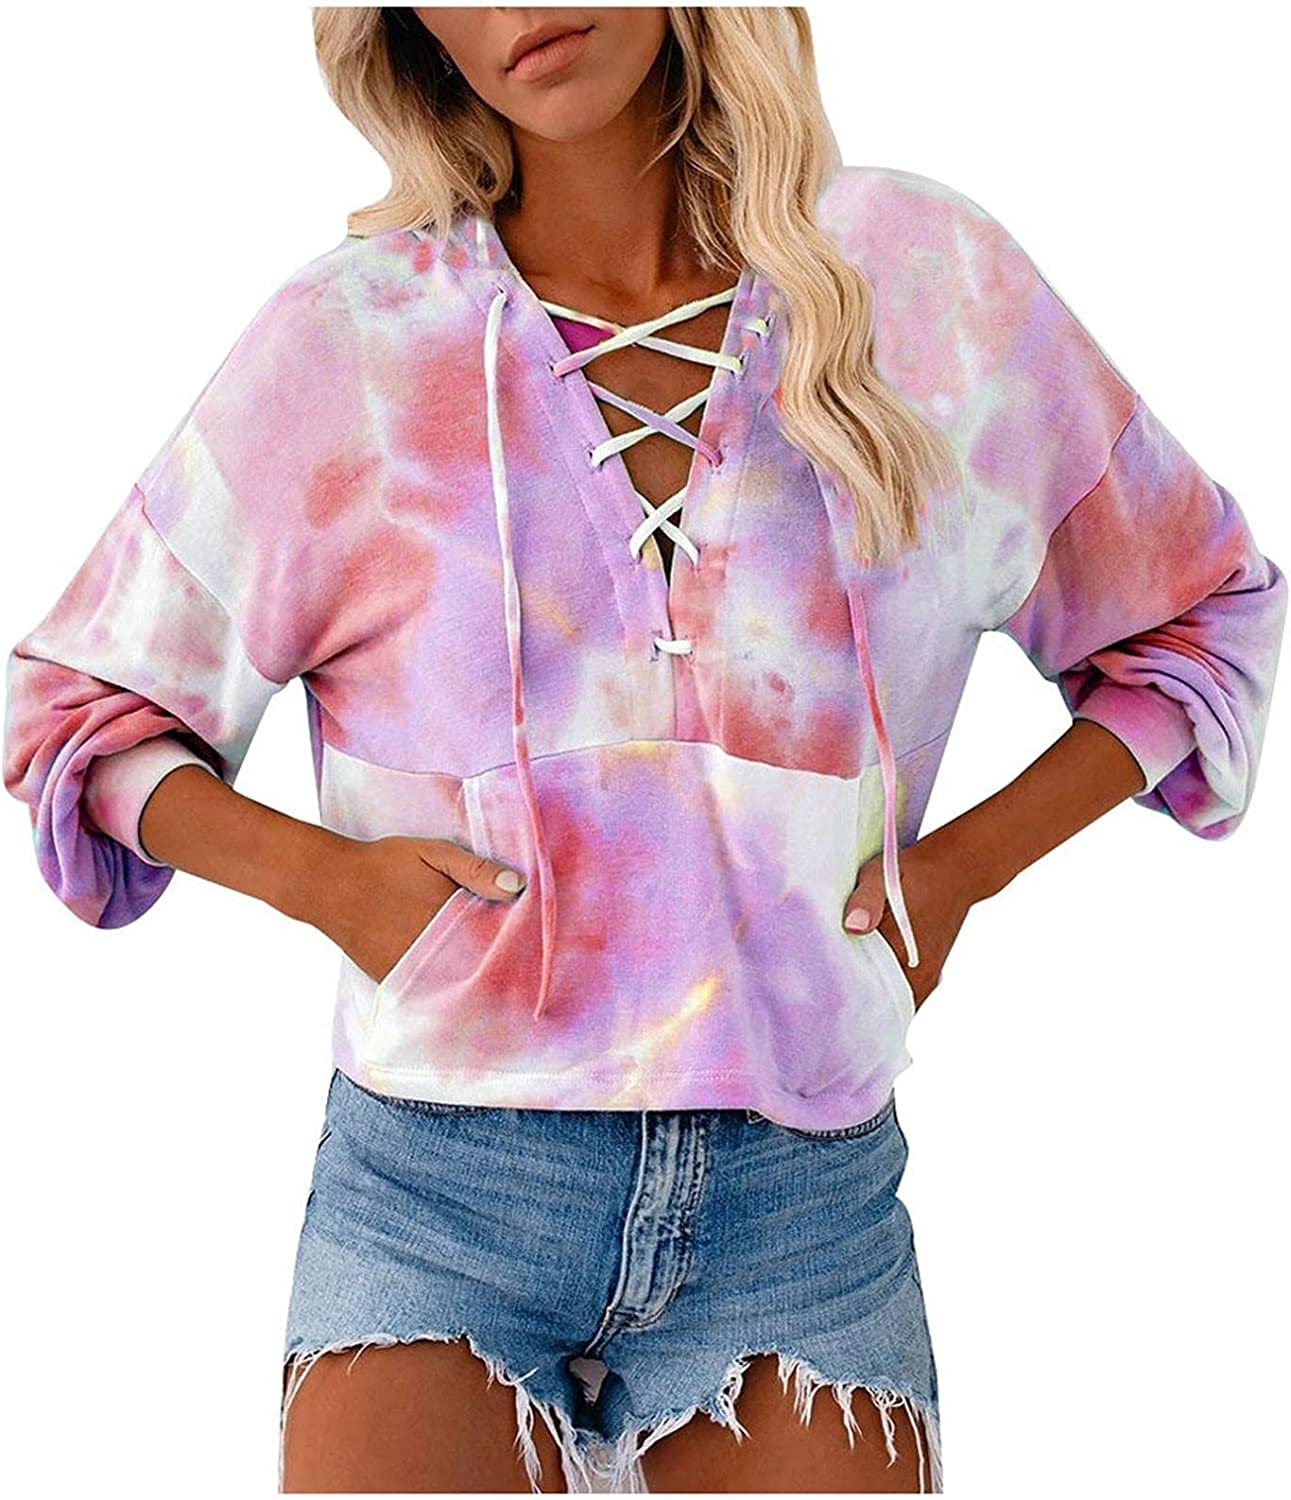 Women Casual Tie-Dye Online limited product Printed V-Neck L Pullover Drawstring Fresno Mall Cutout